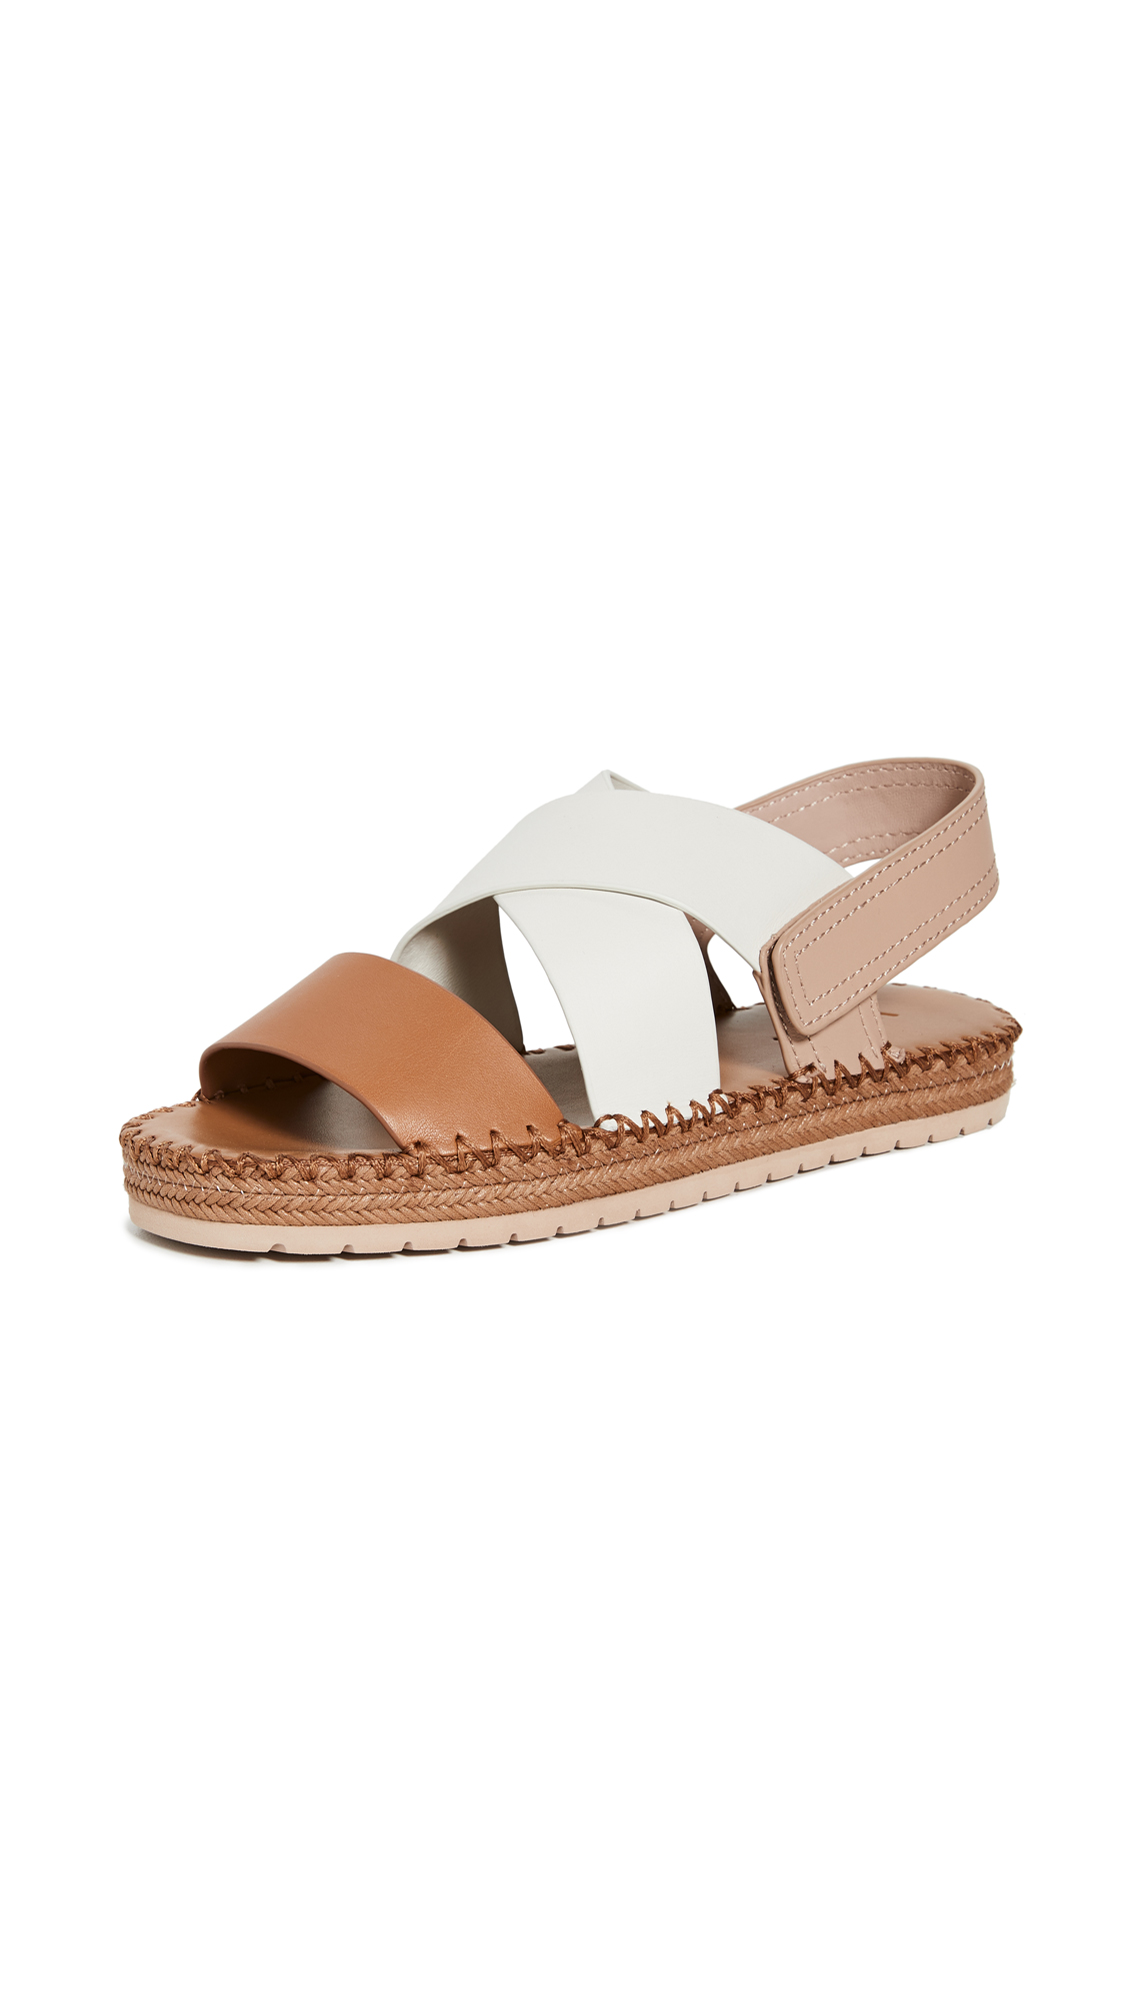 Vince Tenison 2 Sandals – 40% Off Sale